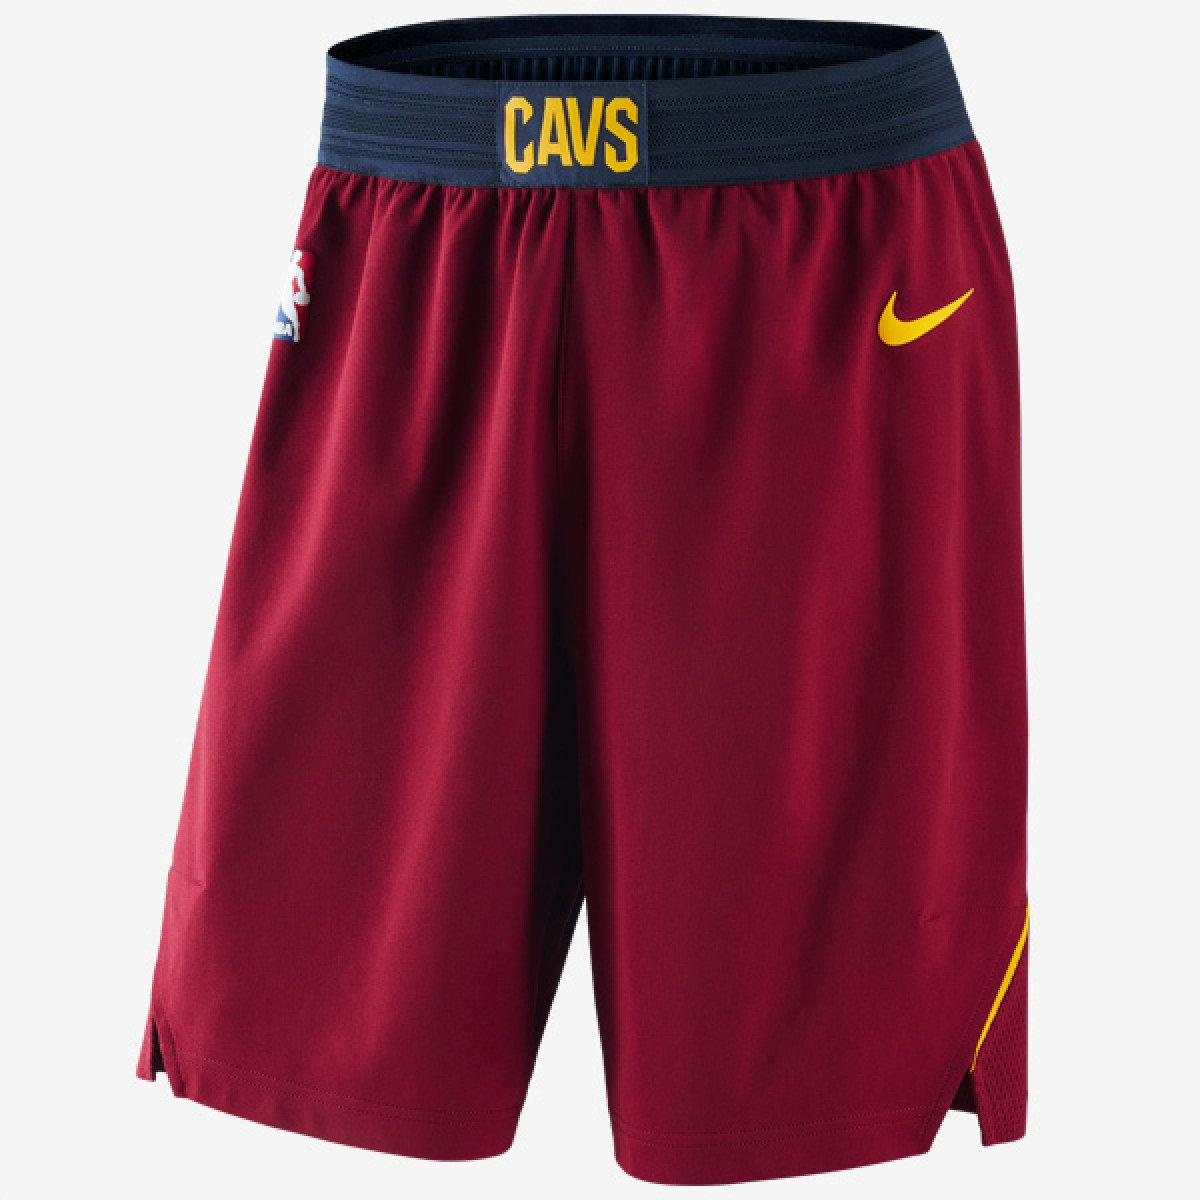 Nike NBA Cavs Authentic Short 'Icon Edition'